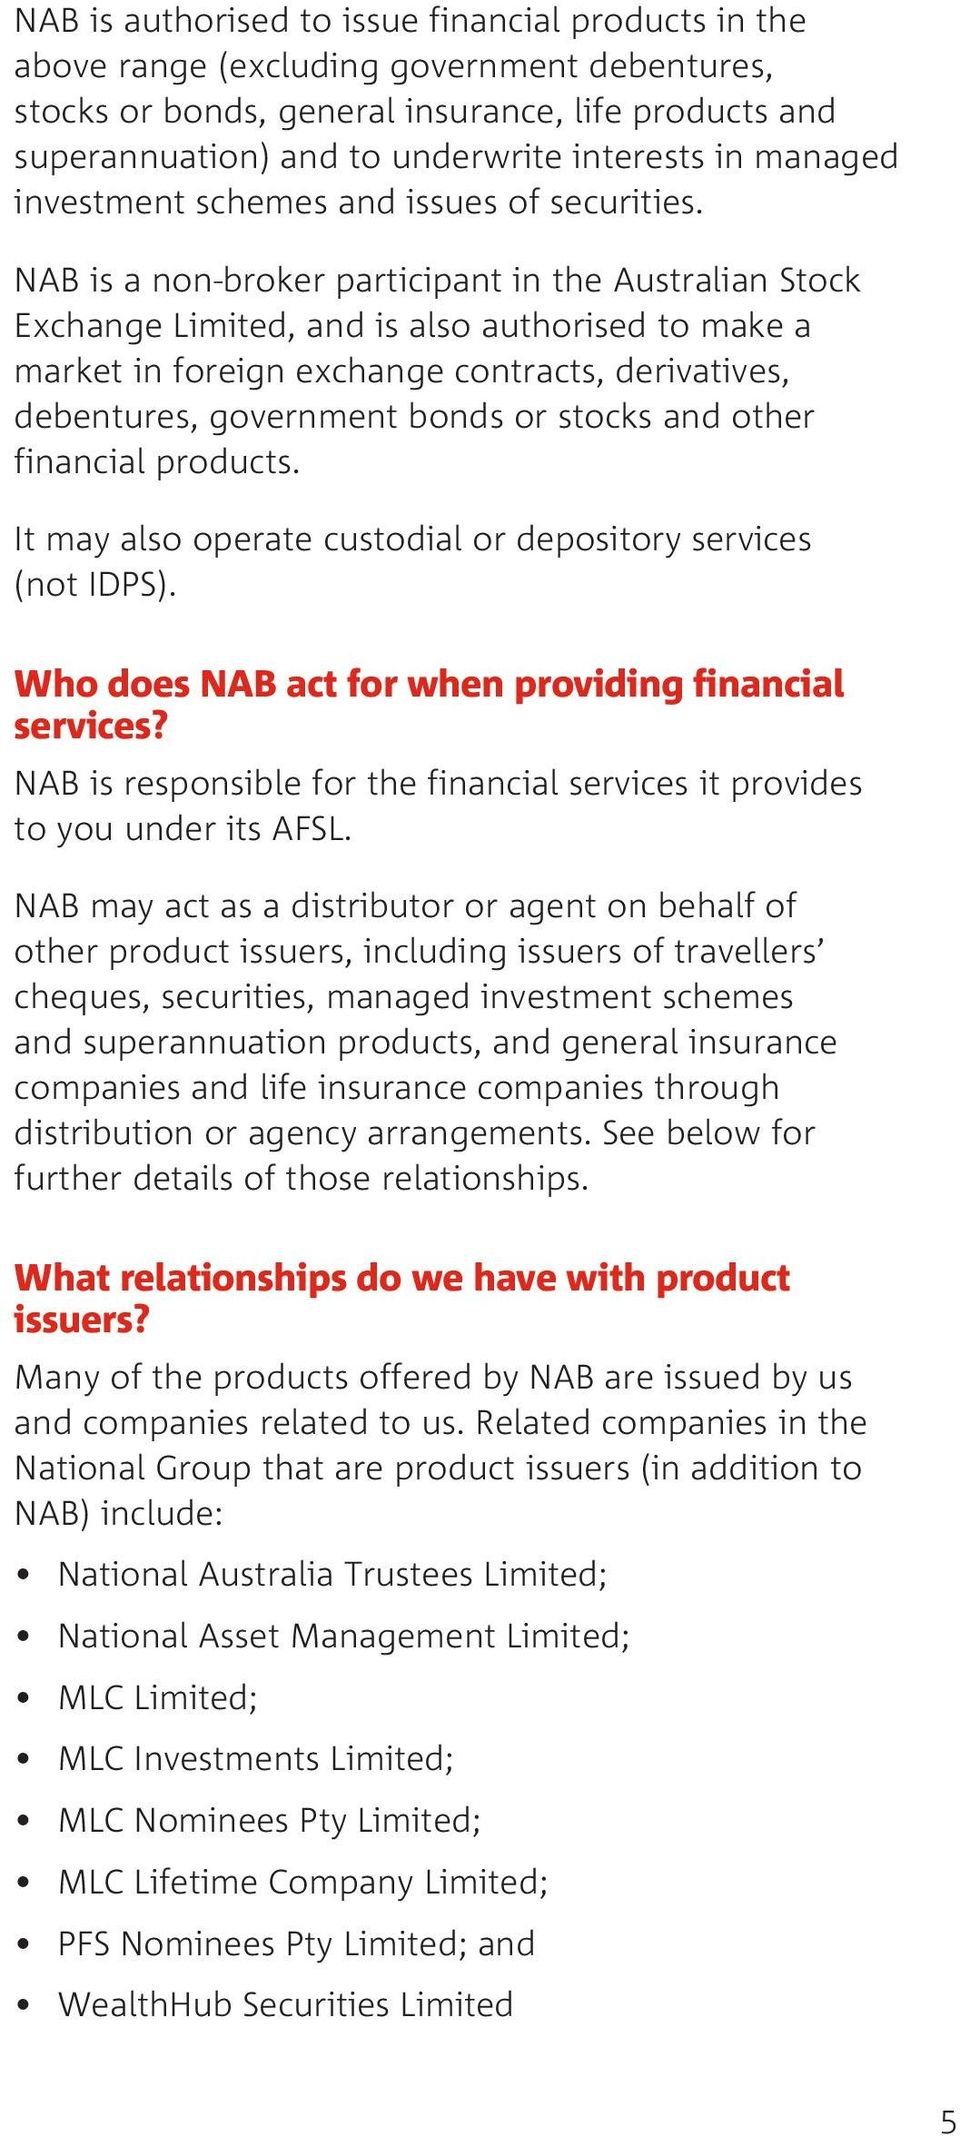 NAB is a non-broker participant in the Australian Stock Exchange Limited, and is also authorised to make a market in foreign exchange contracts, derivatives, debentures, government bonds or stocks